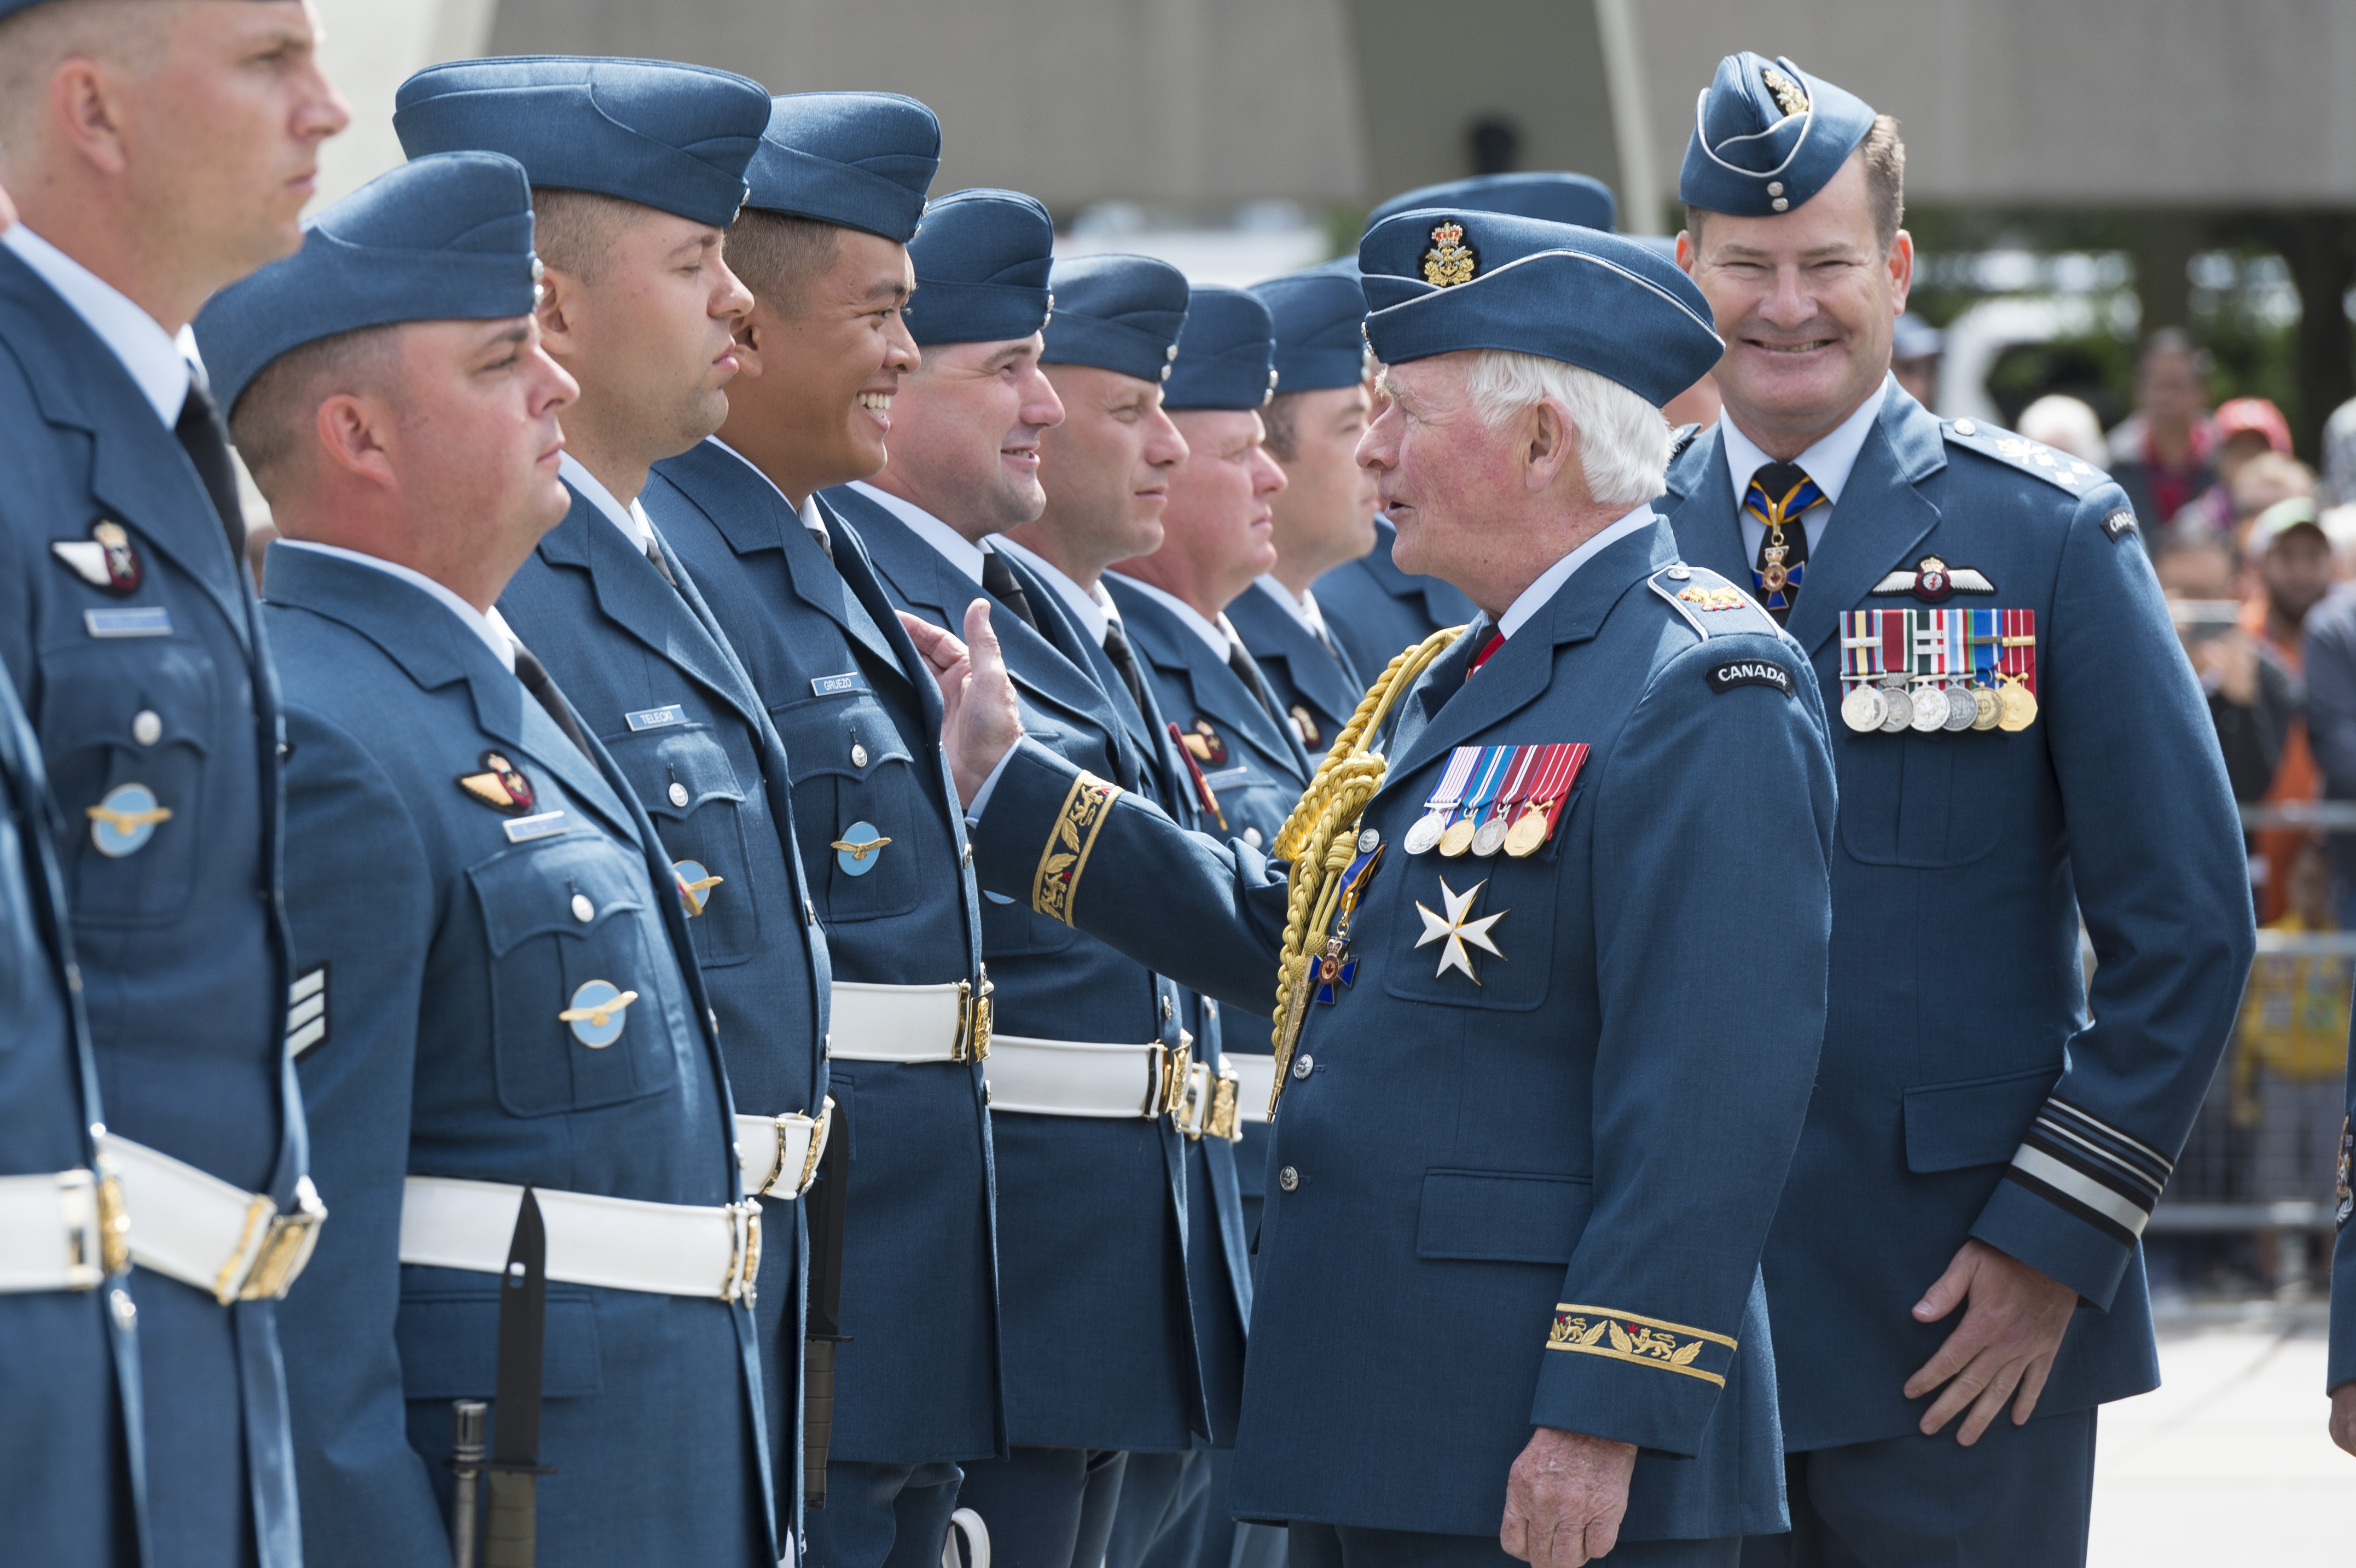 David Johnston, gouverneur général et commandant en chef du Canada, accompagné du lieutenant-général Mike Hood, commandant de l'Aviation royale canadienne, s'arrête pour discuter avec un militaire de l'ARC durant son inspection de la garde d'honneur. PHOTO : Sergent Johanie Maheu, Rideau Hall © OSGG, GG05-2017-0309-016